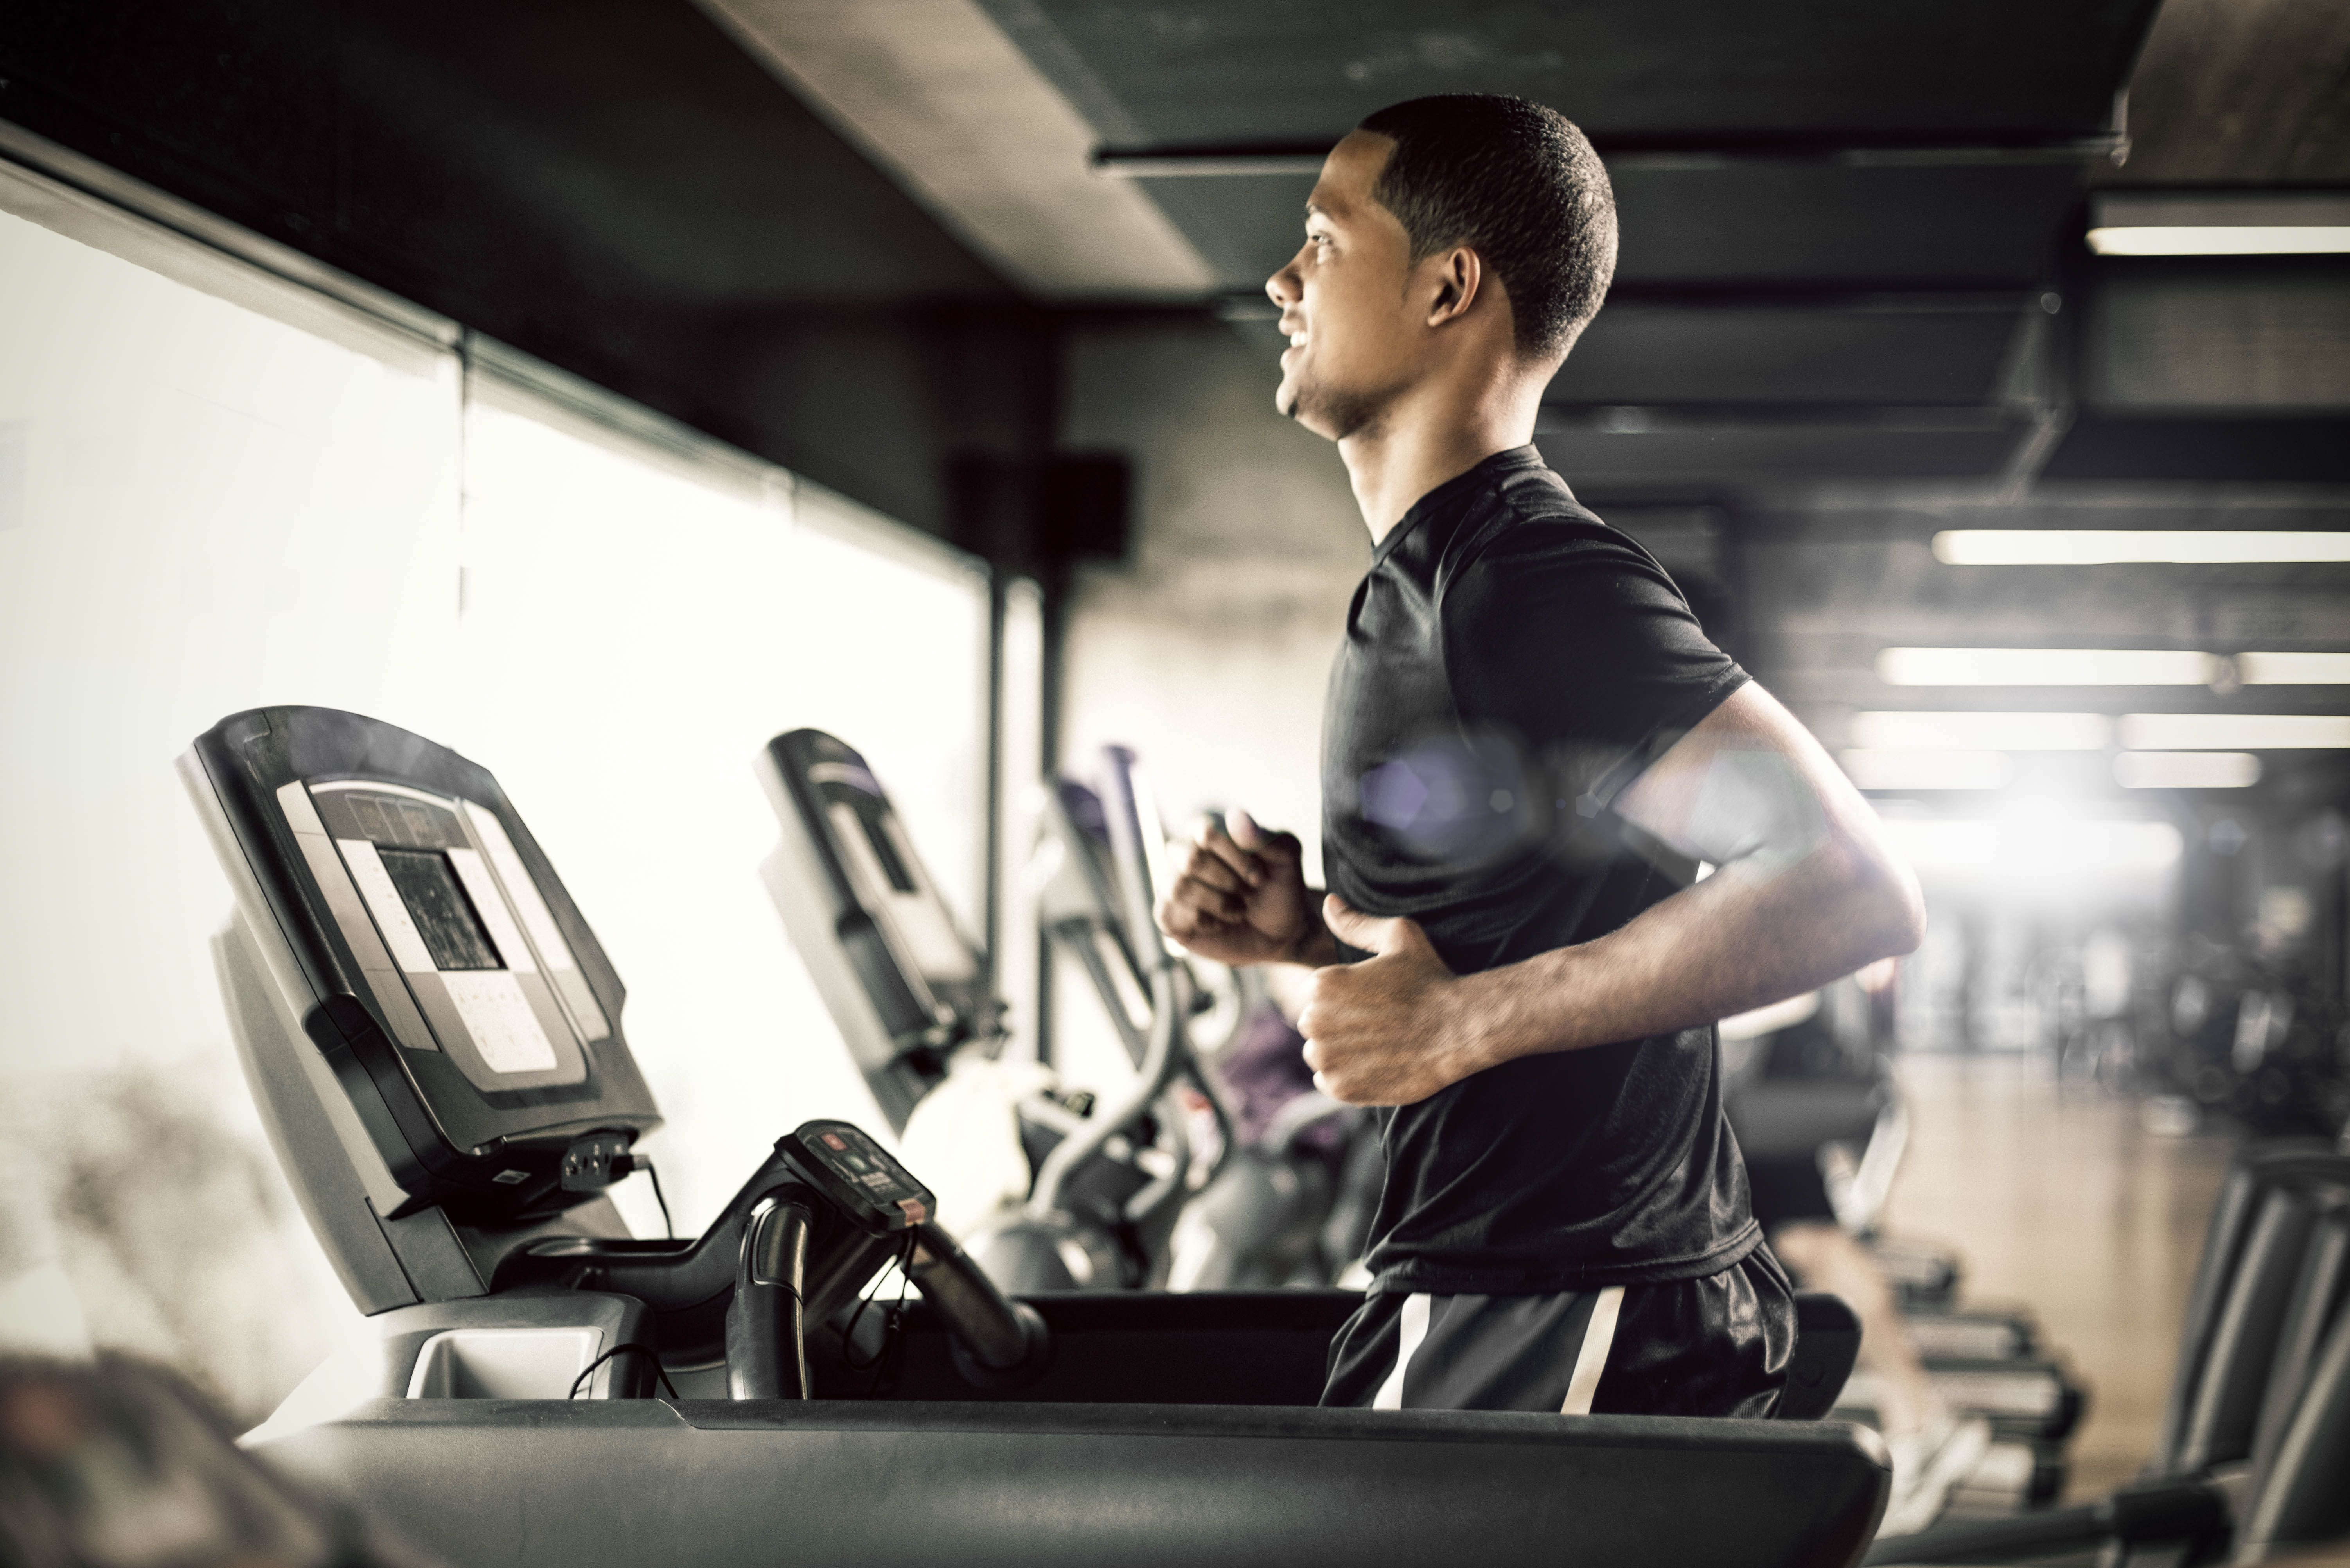 Free Fall Wallpaper Apps Treadmill Benefits Why You Should Love Running Indoors